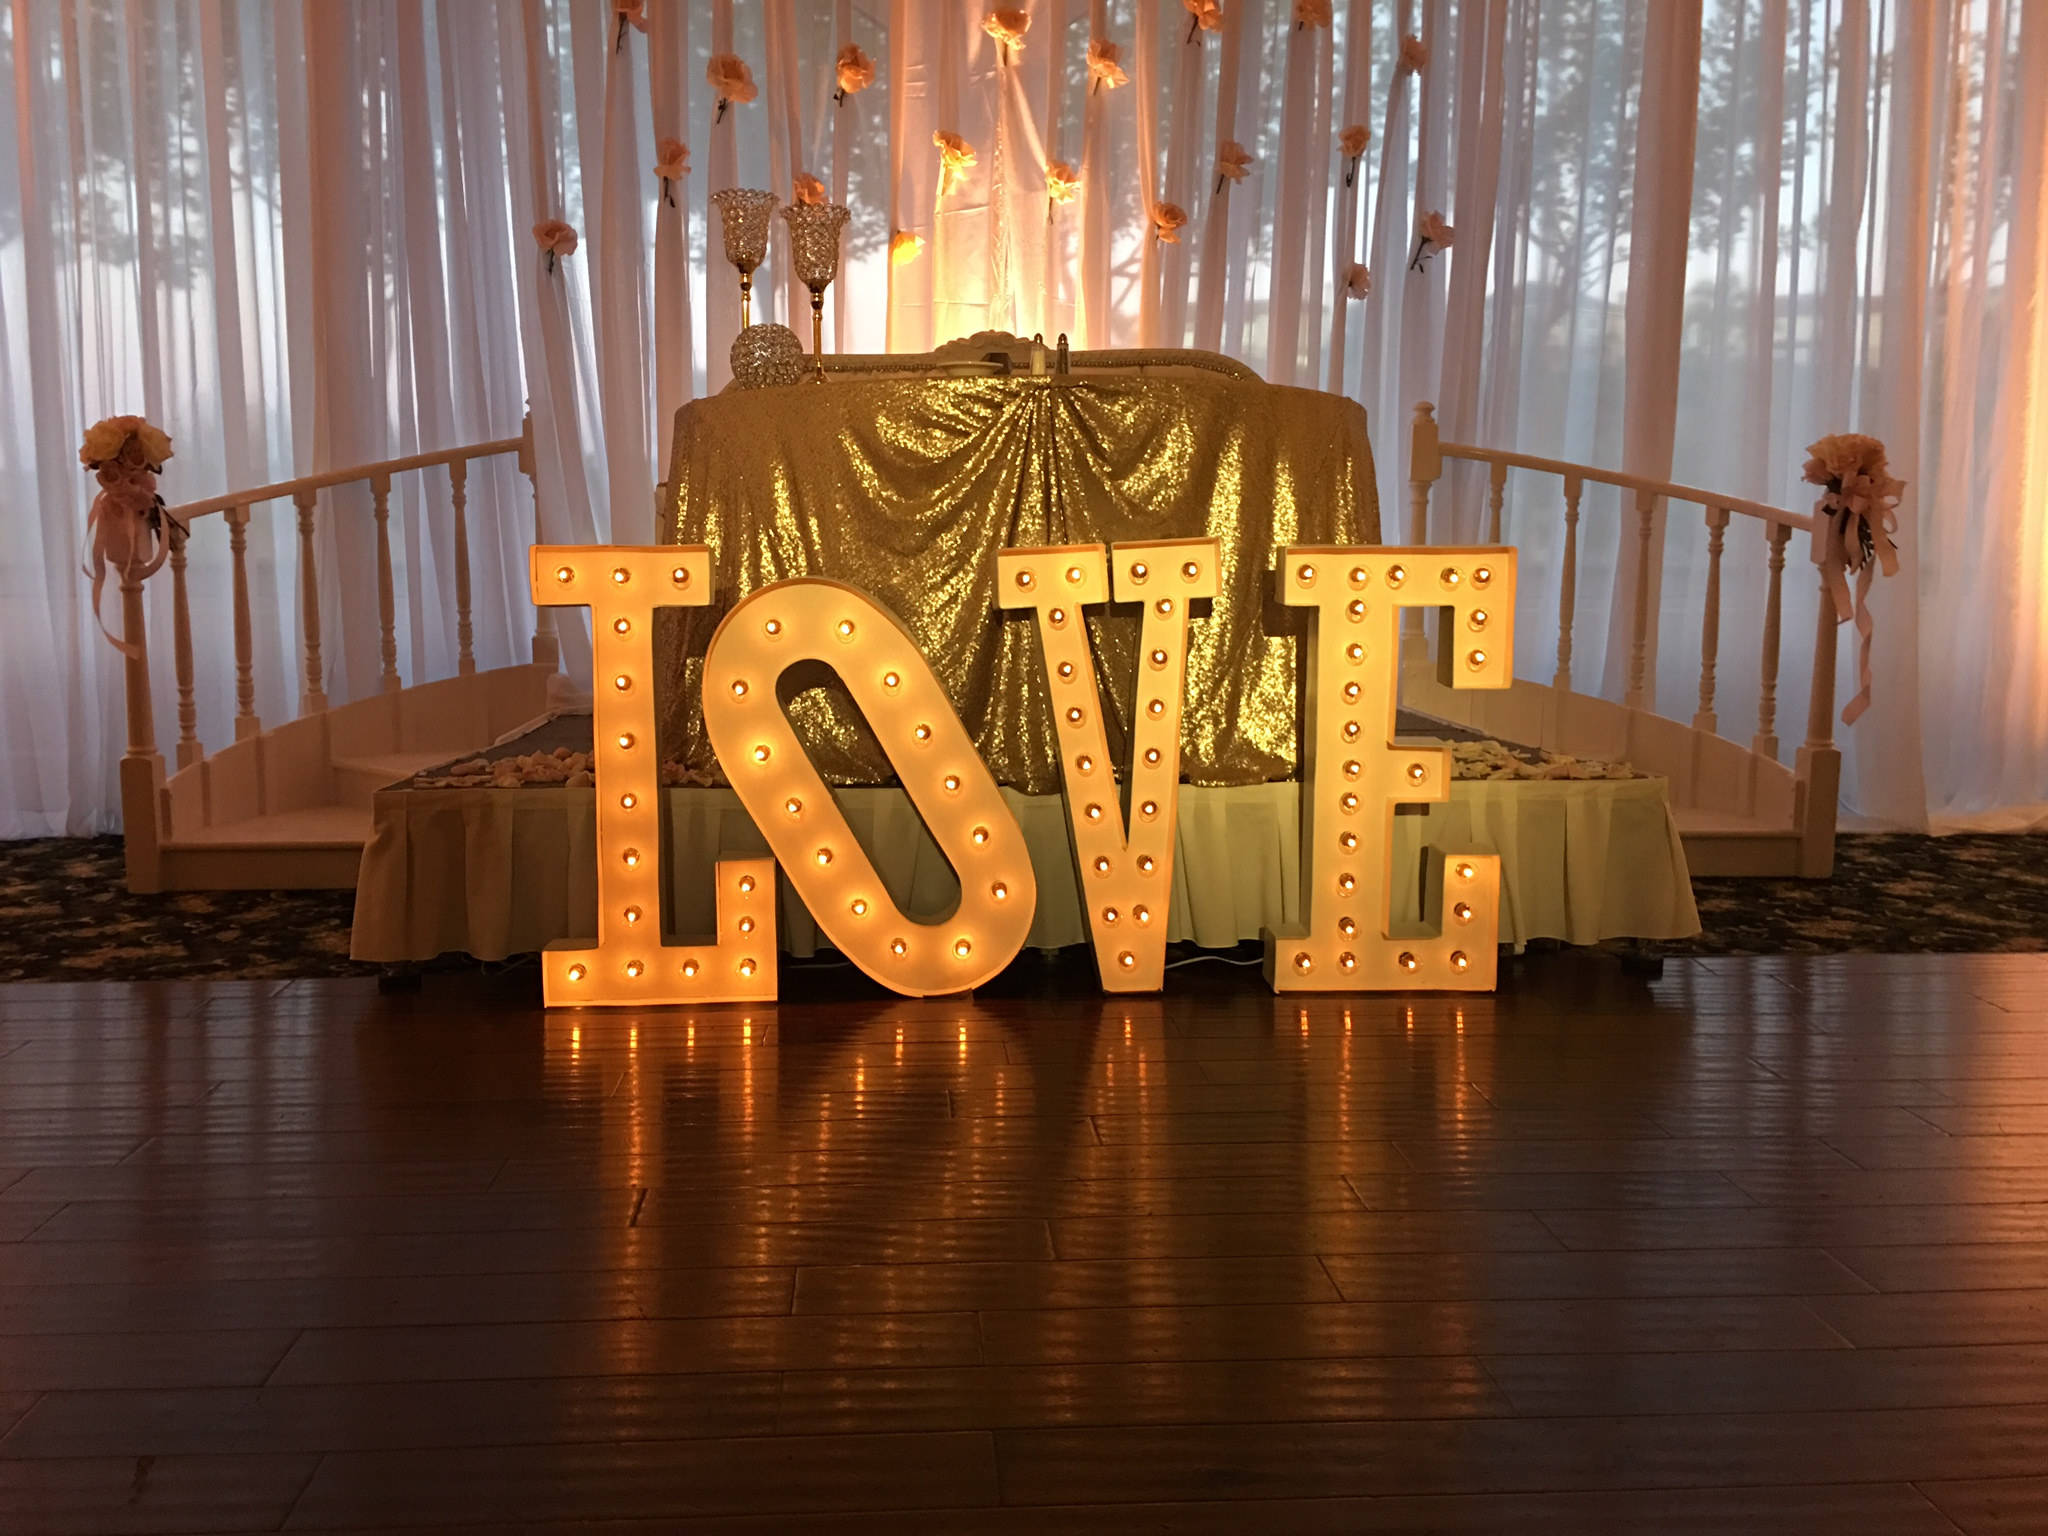 Westridge Golf Wedding La Habra Marquee Letters